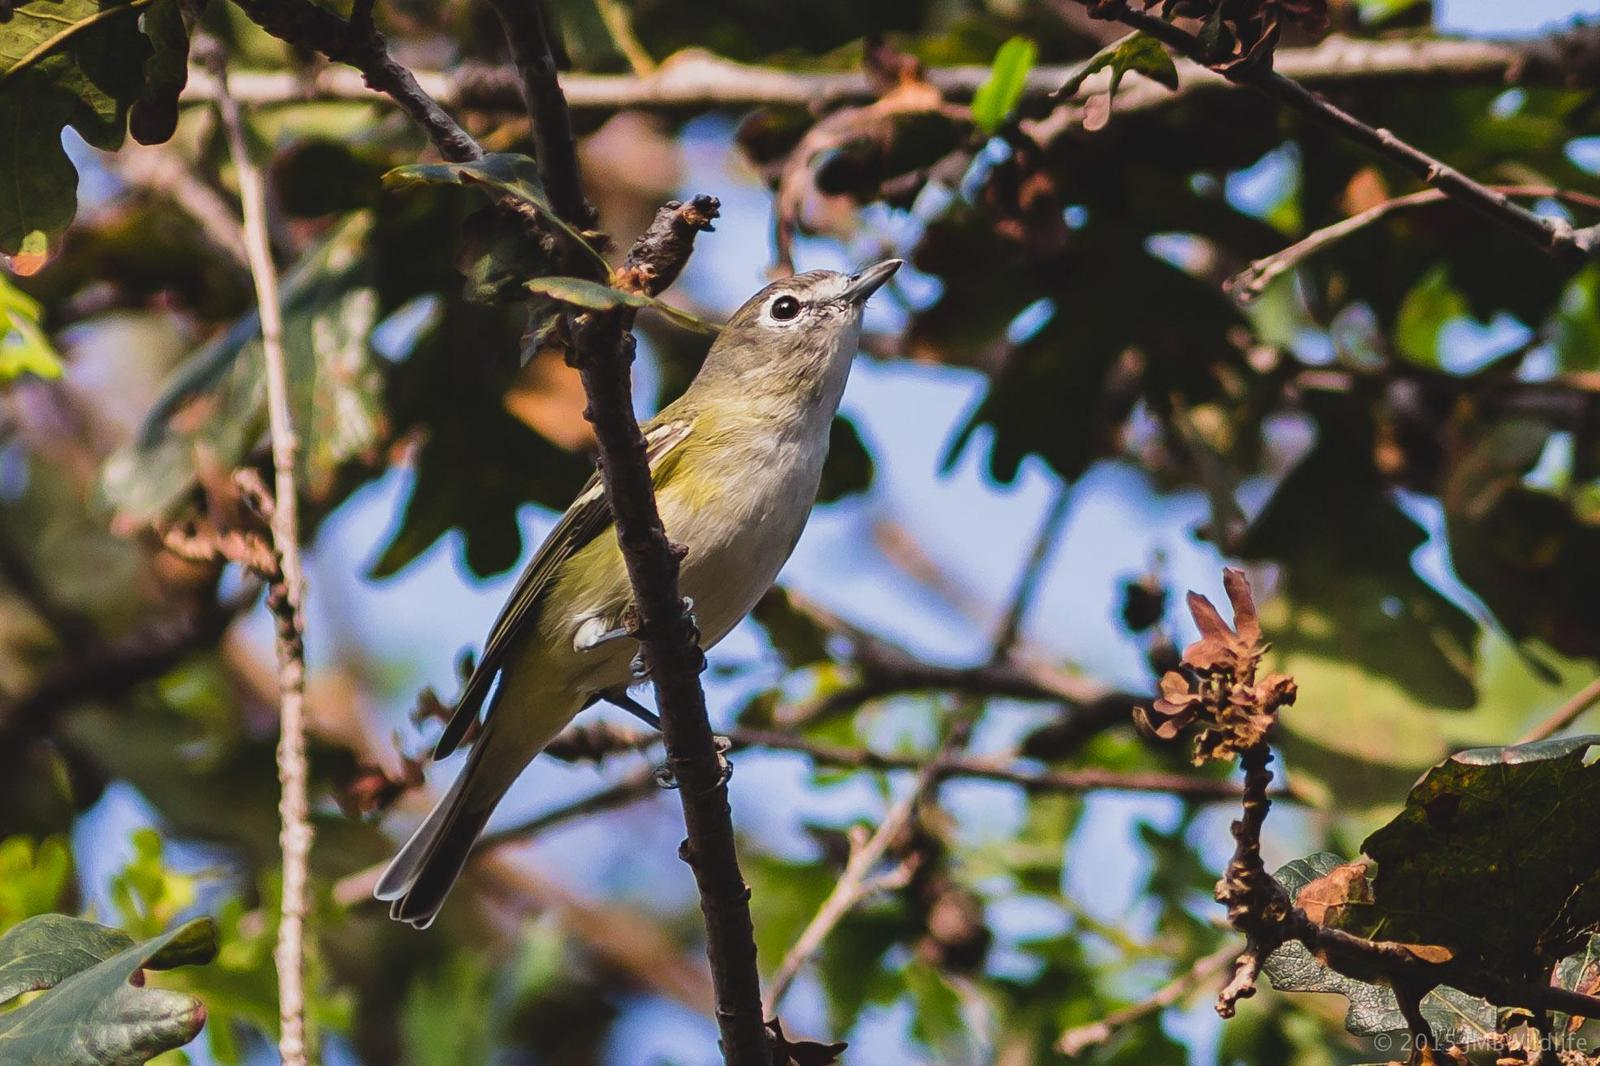 Cassin's Vireo Photo by Jeff Bray